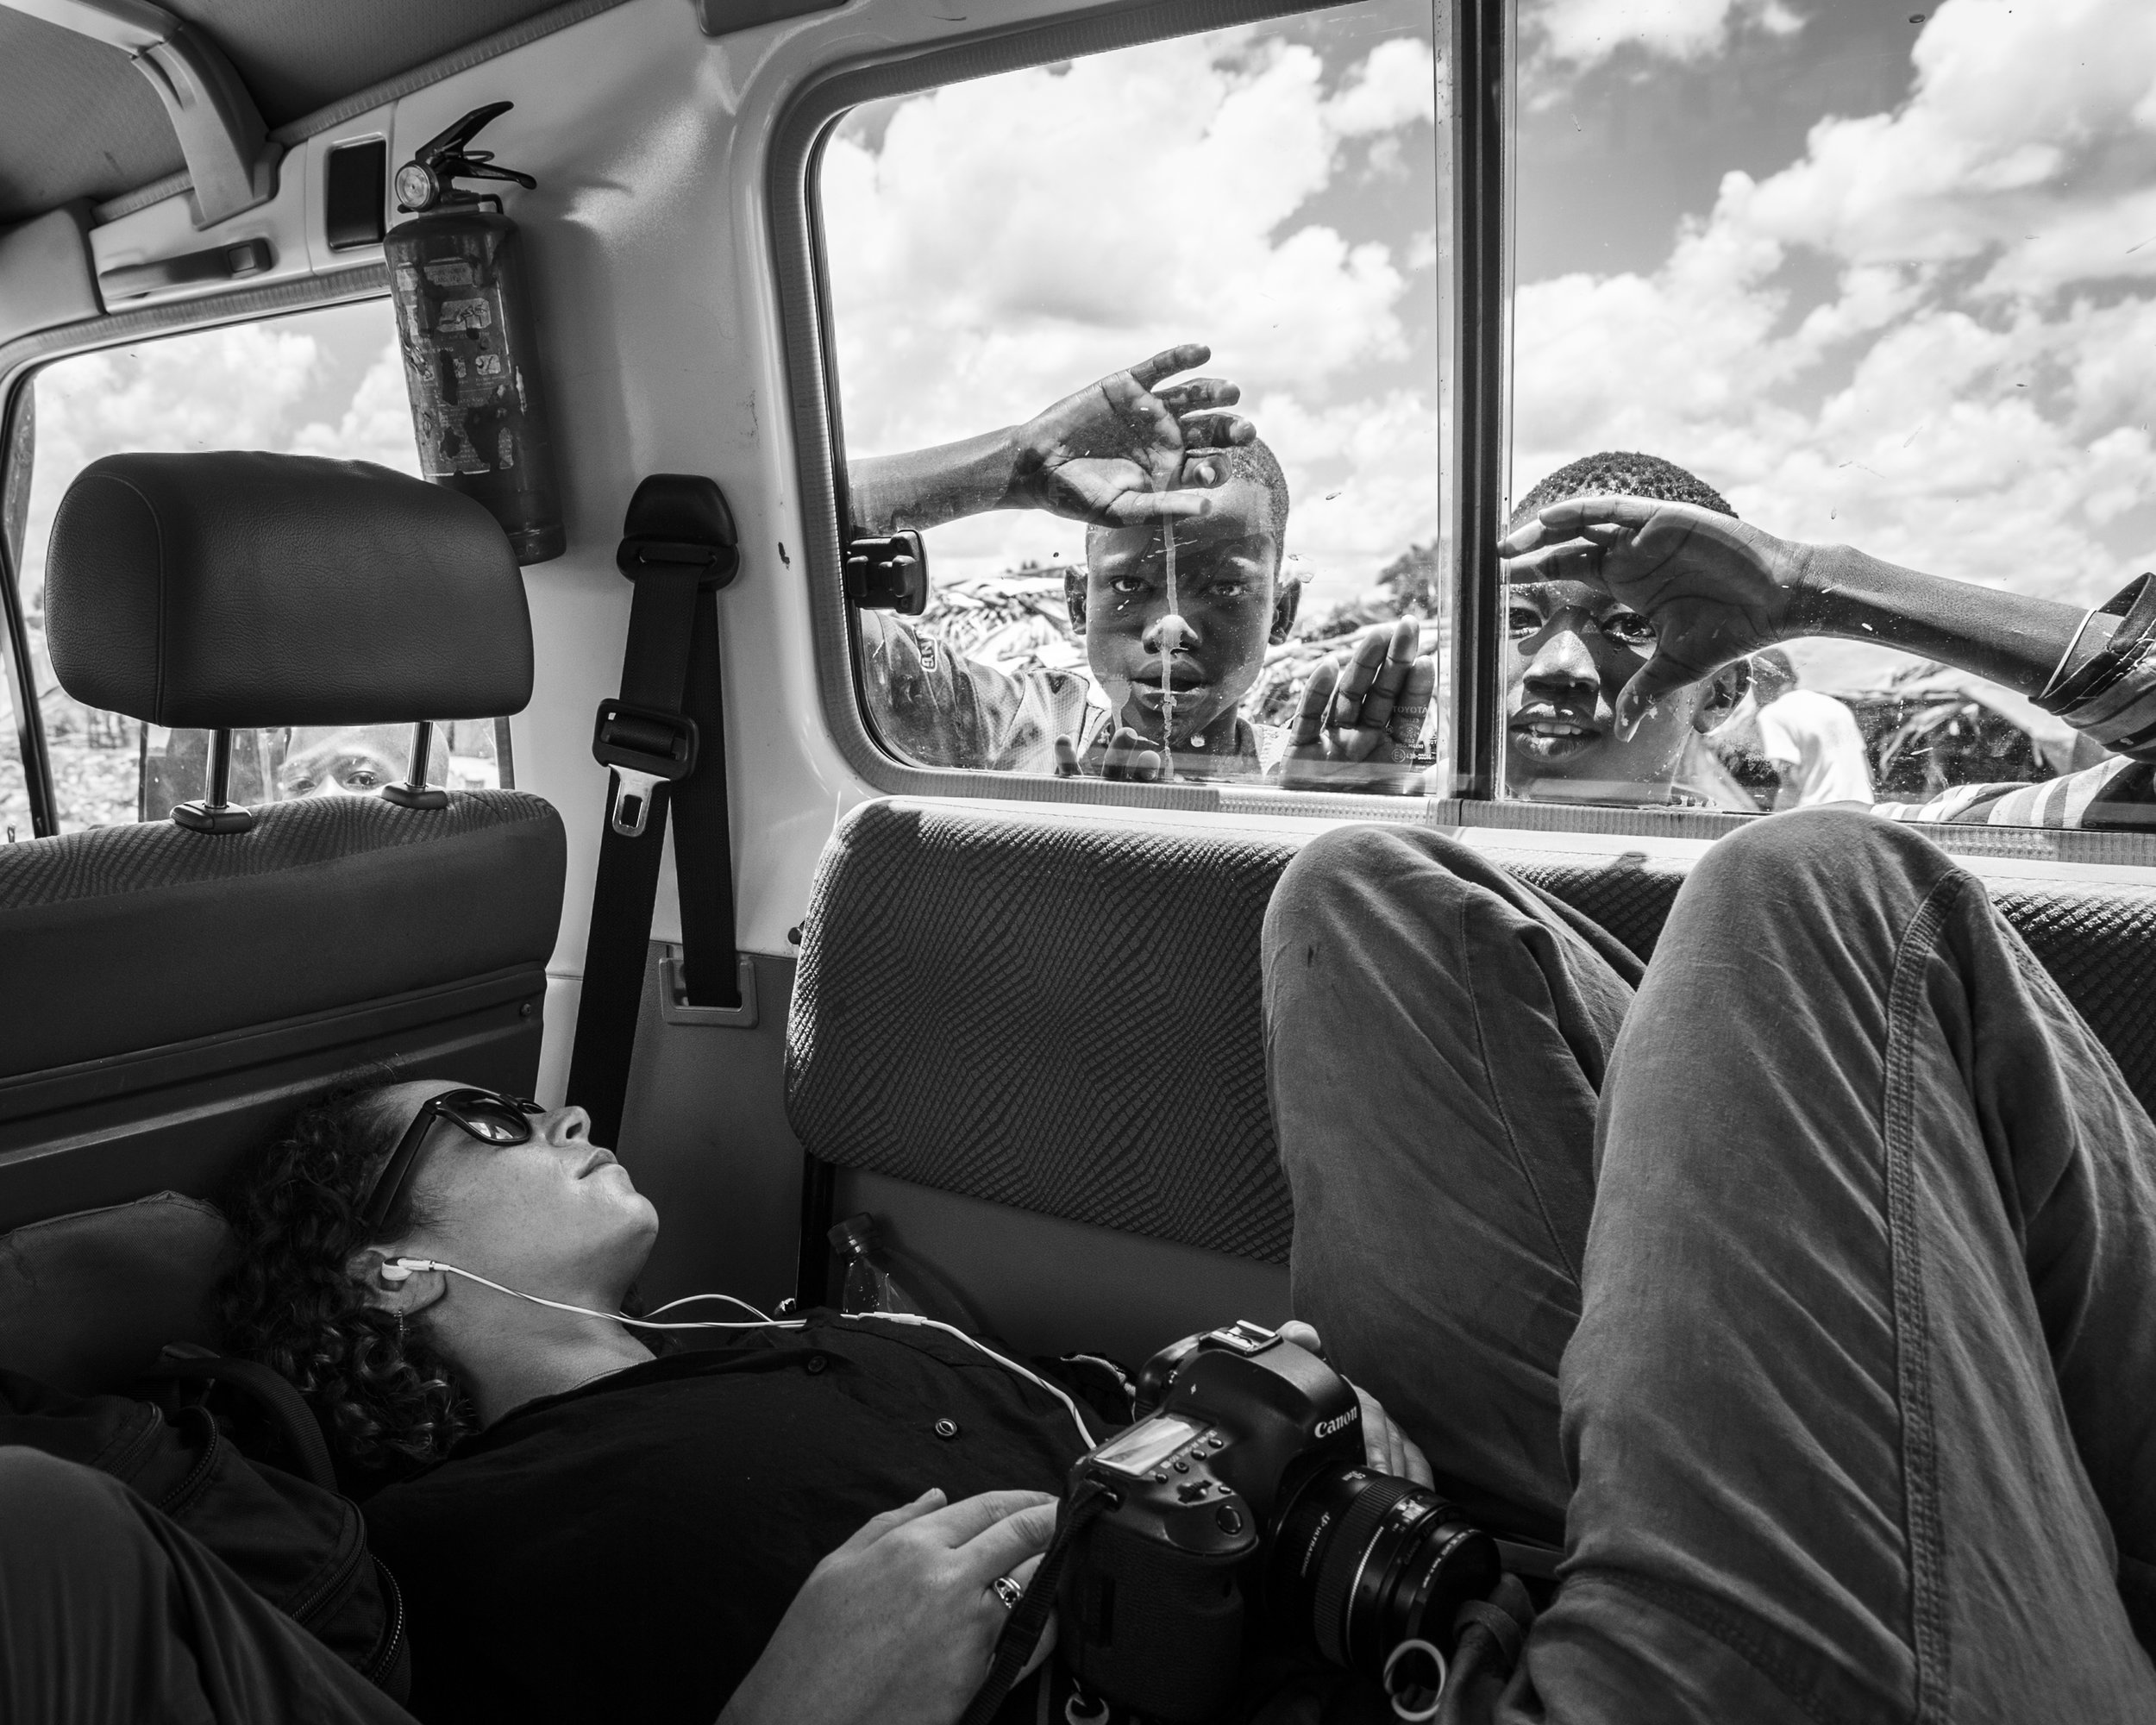 Backstage with Sheeko - On assignment with Sheeko Productions. Photo taken somewhere on a waterlogged road during a six hour drive in the Western Lakes State, South Sudan.